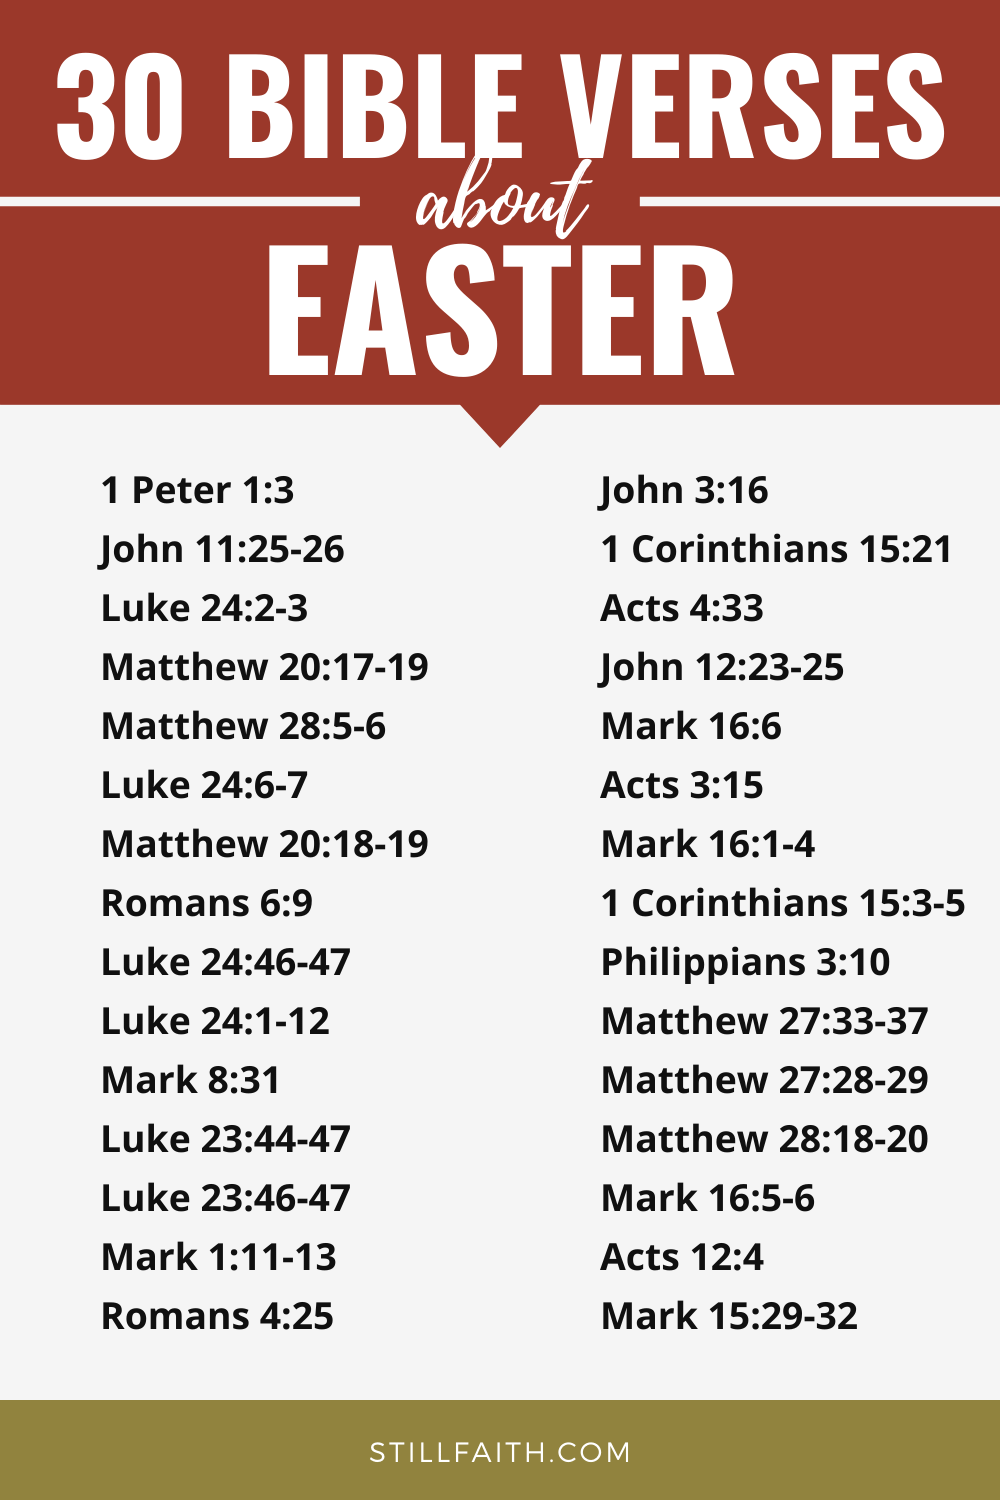 123 Bible Verses about Easter